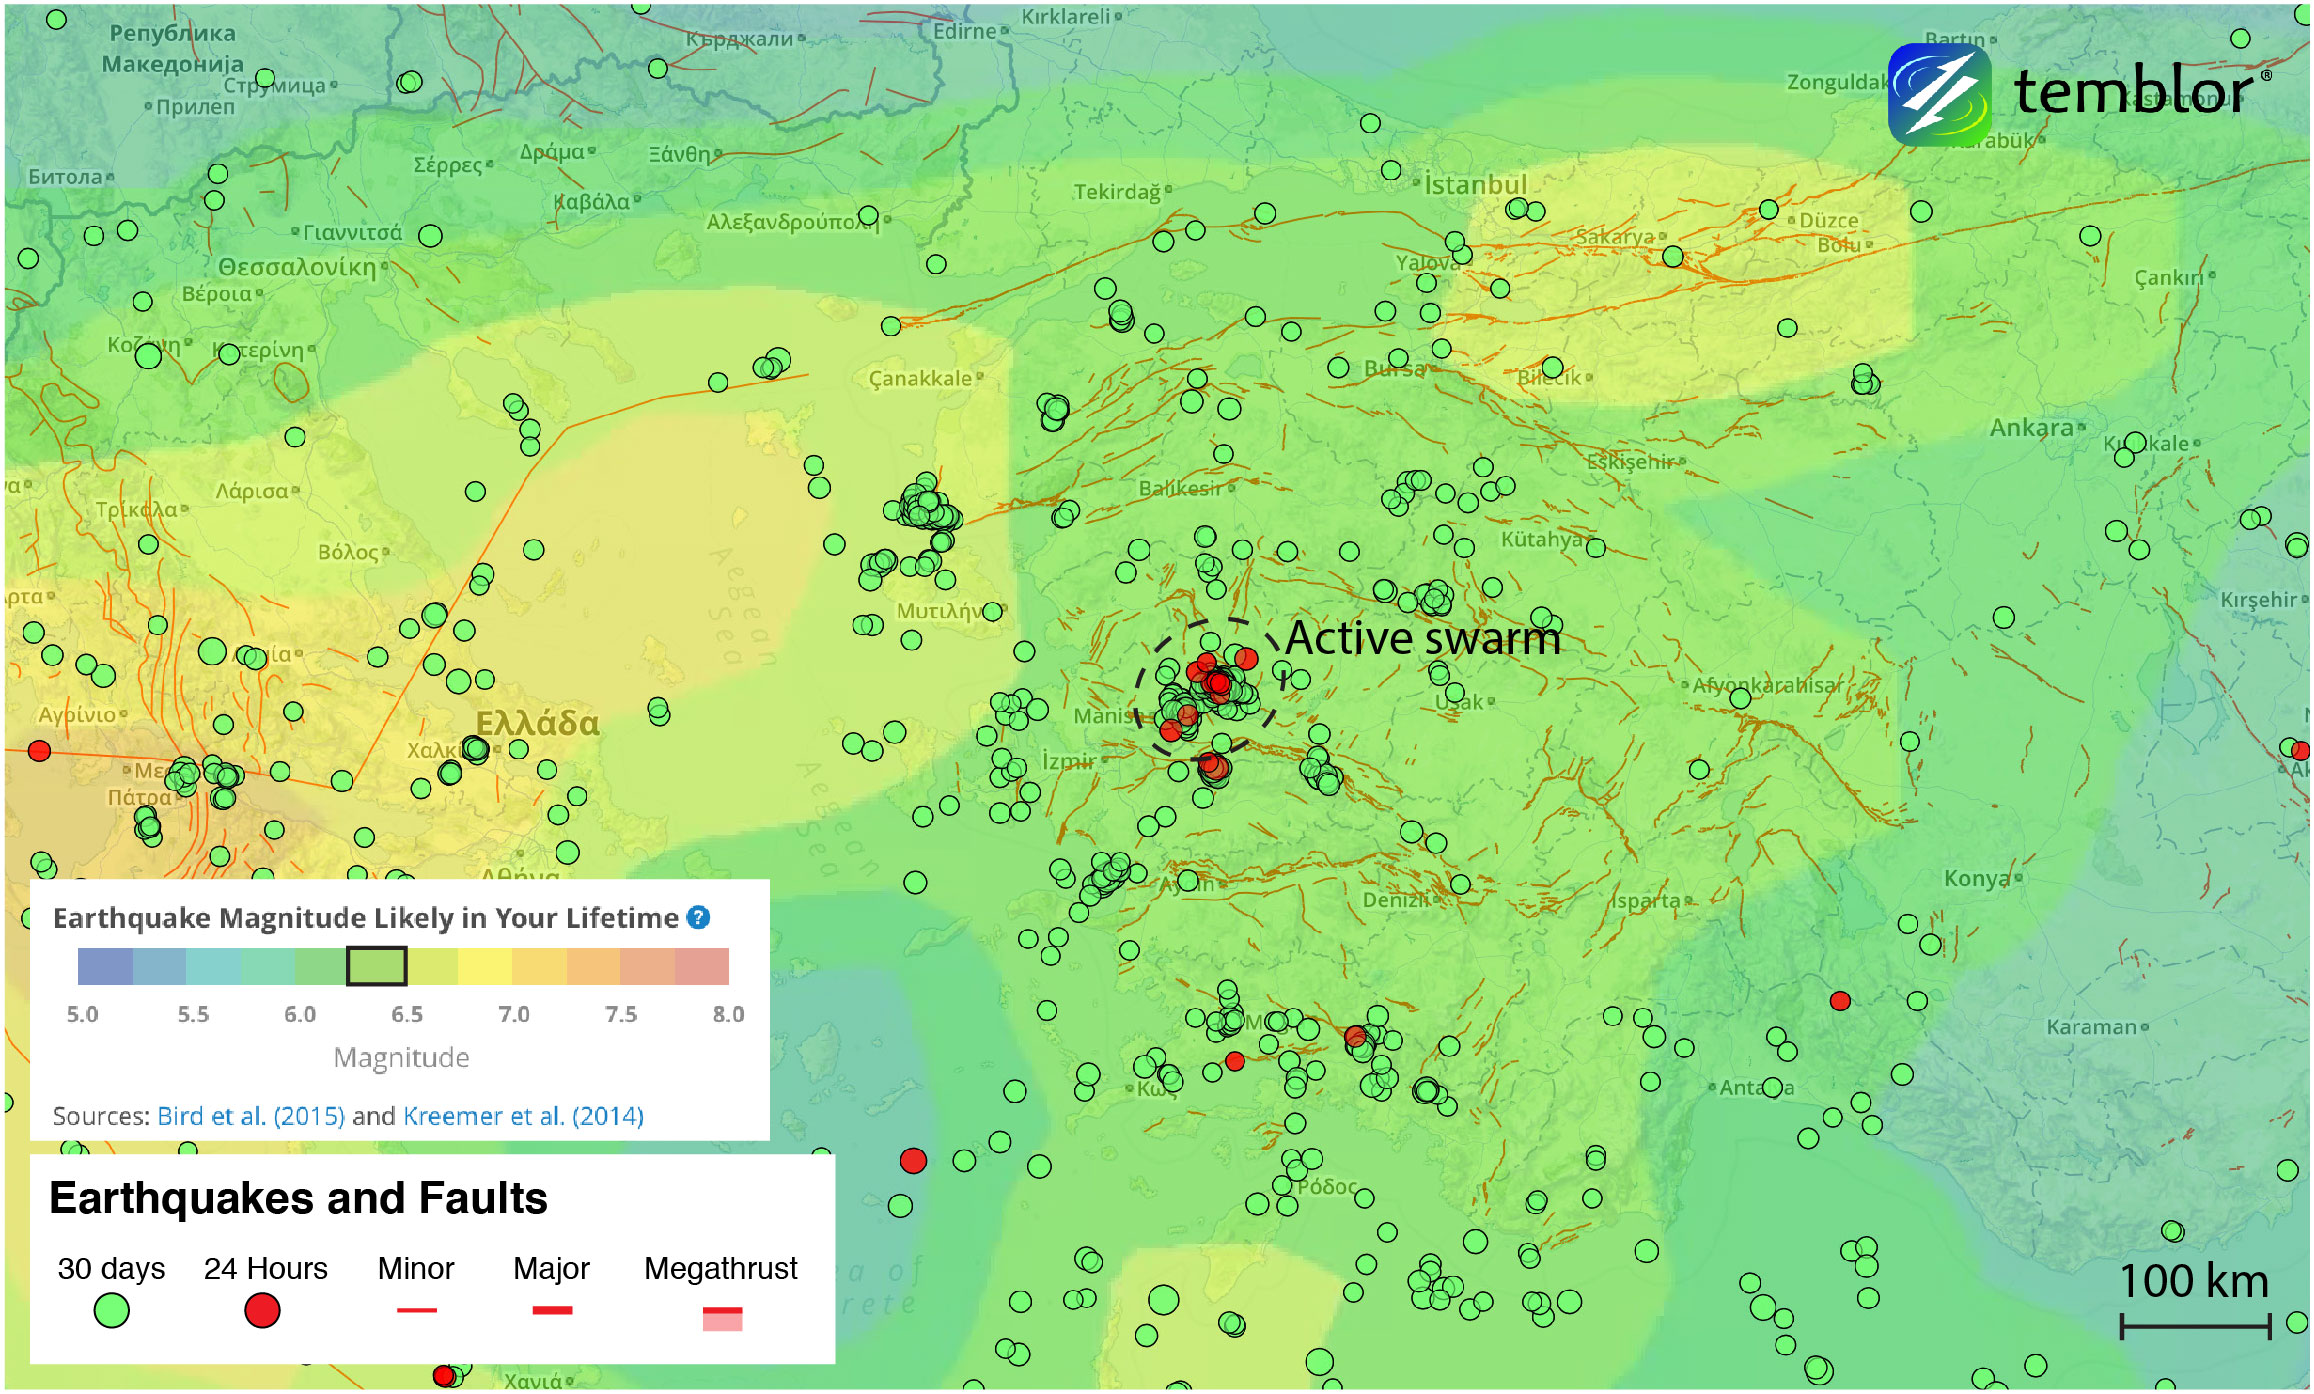 Turkey-active-seismic-swarm